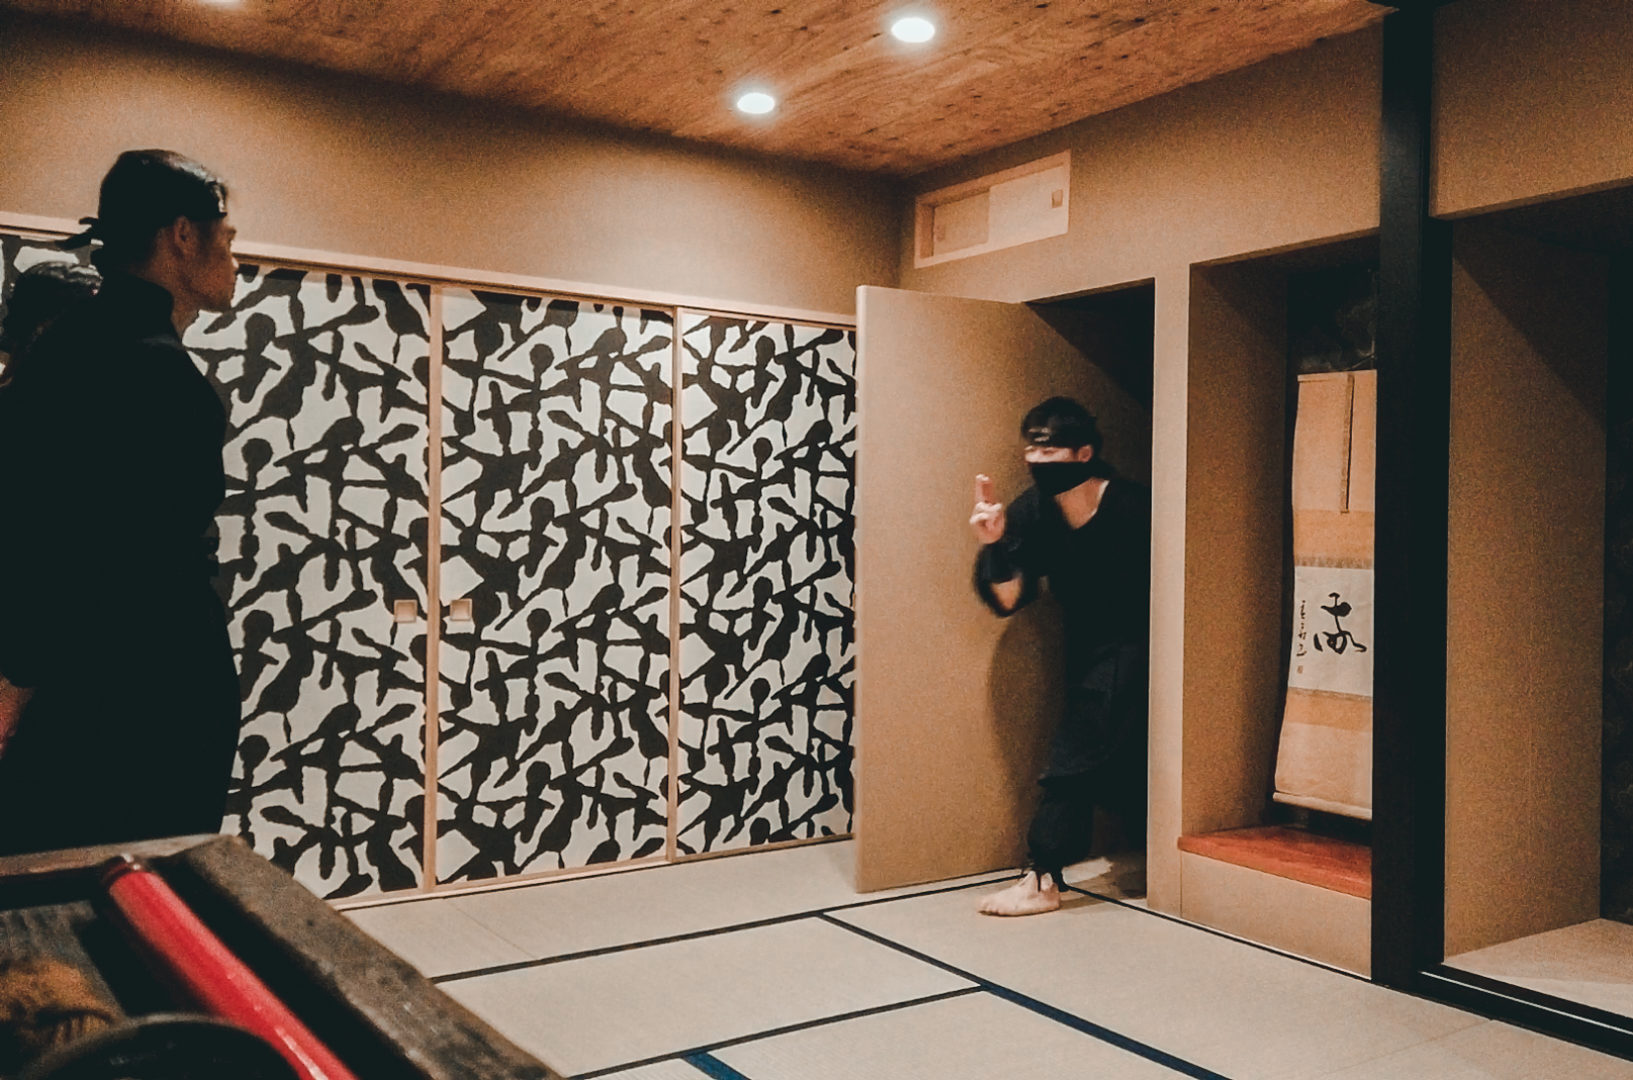 sapporo-ninja-experience-via-kkday-must-try-activity-when-in-sapporo